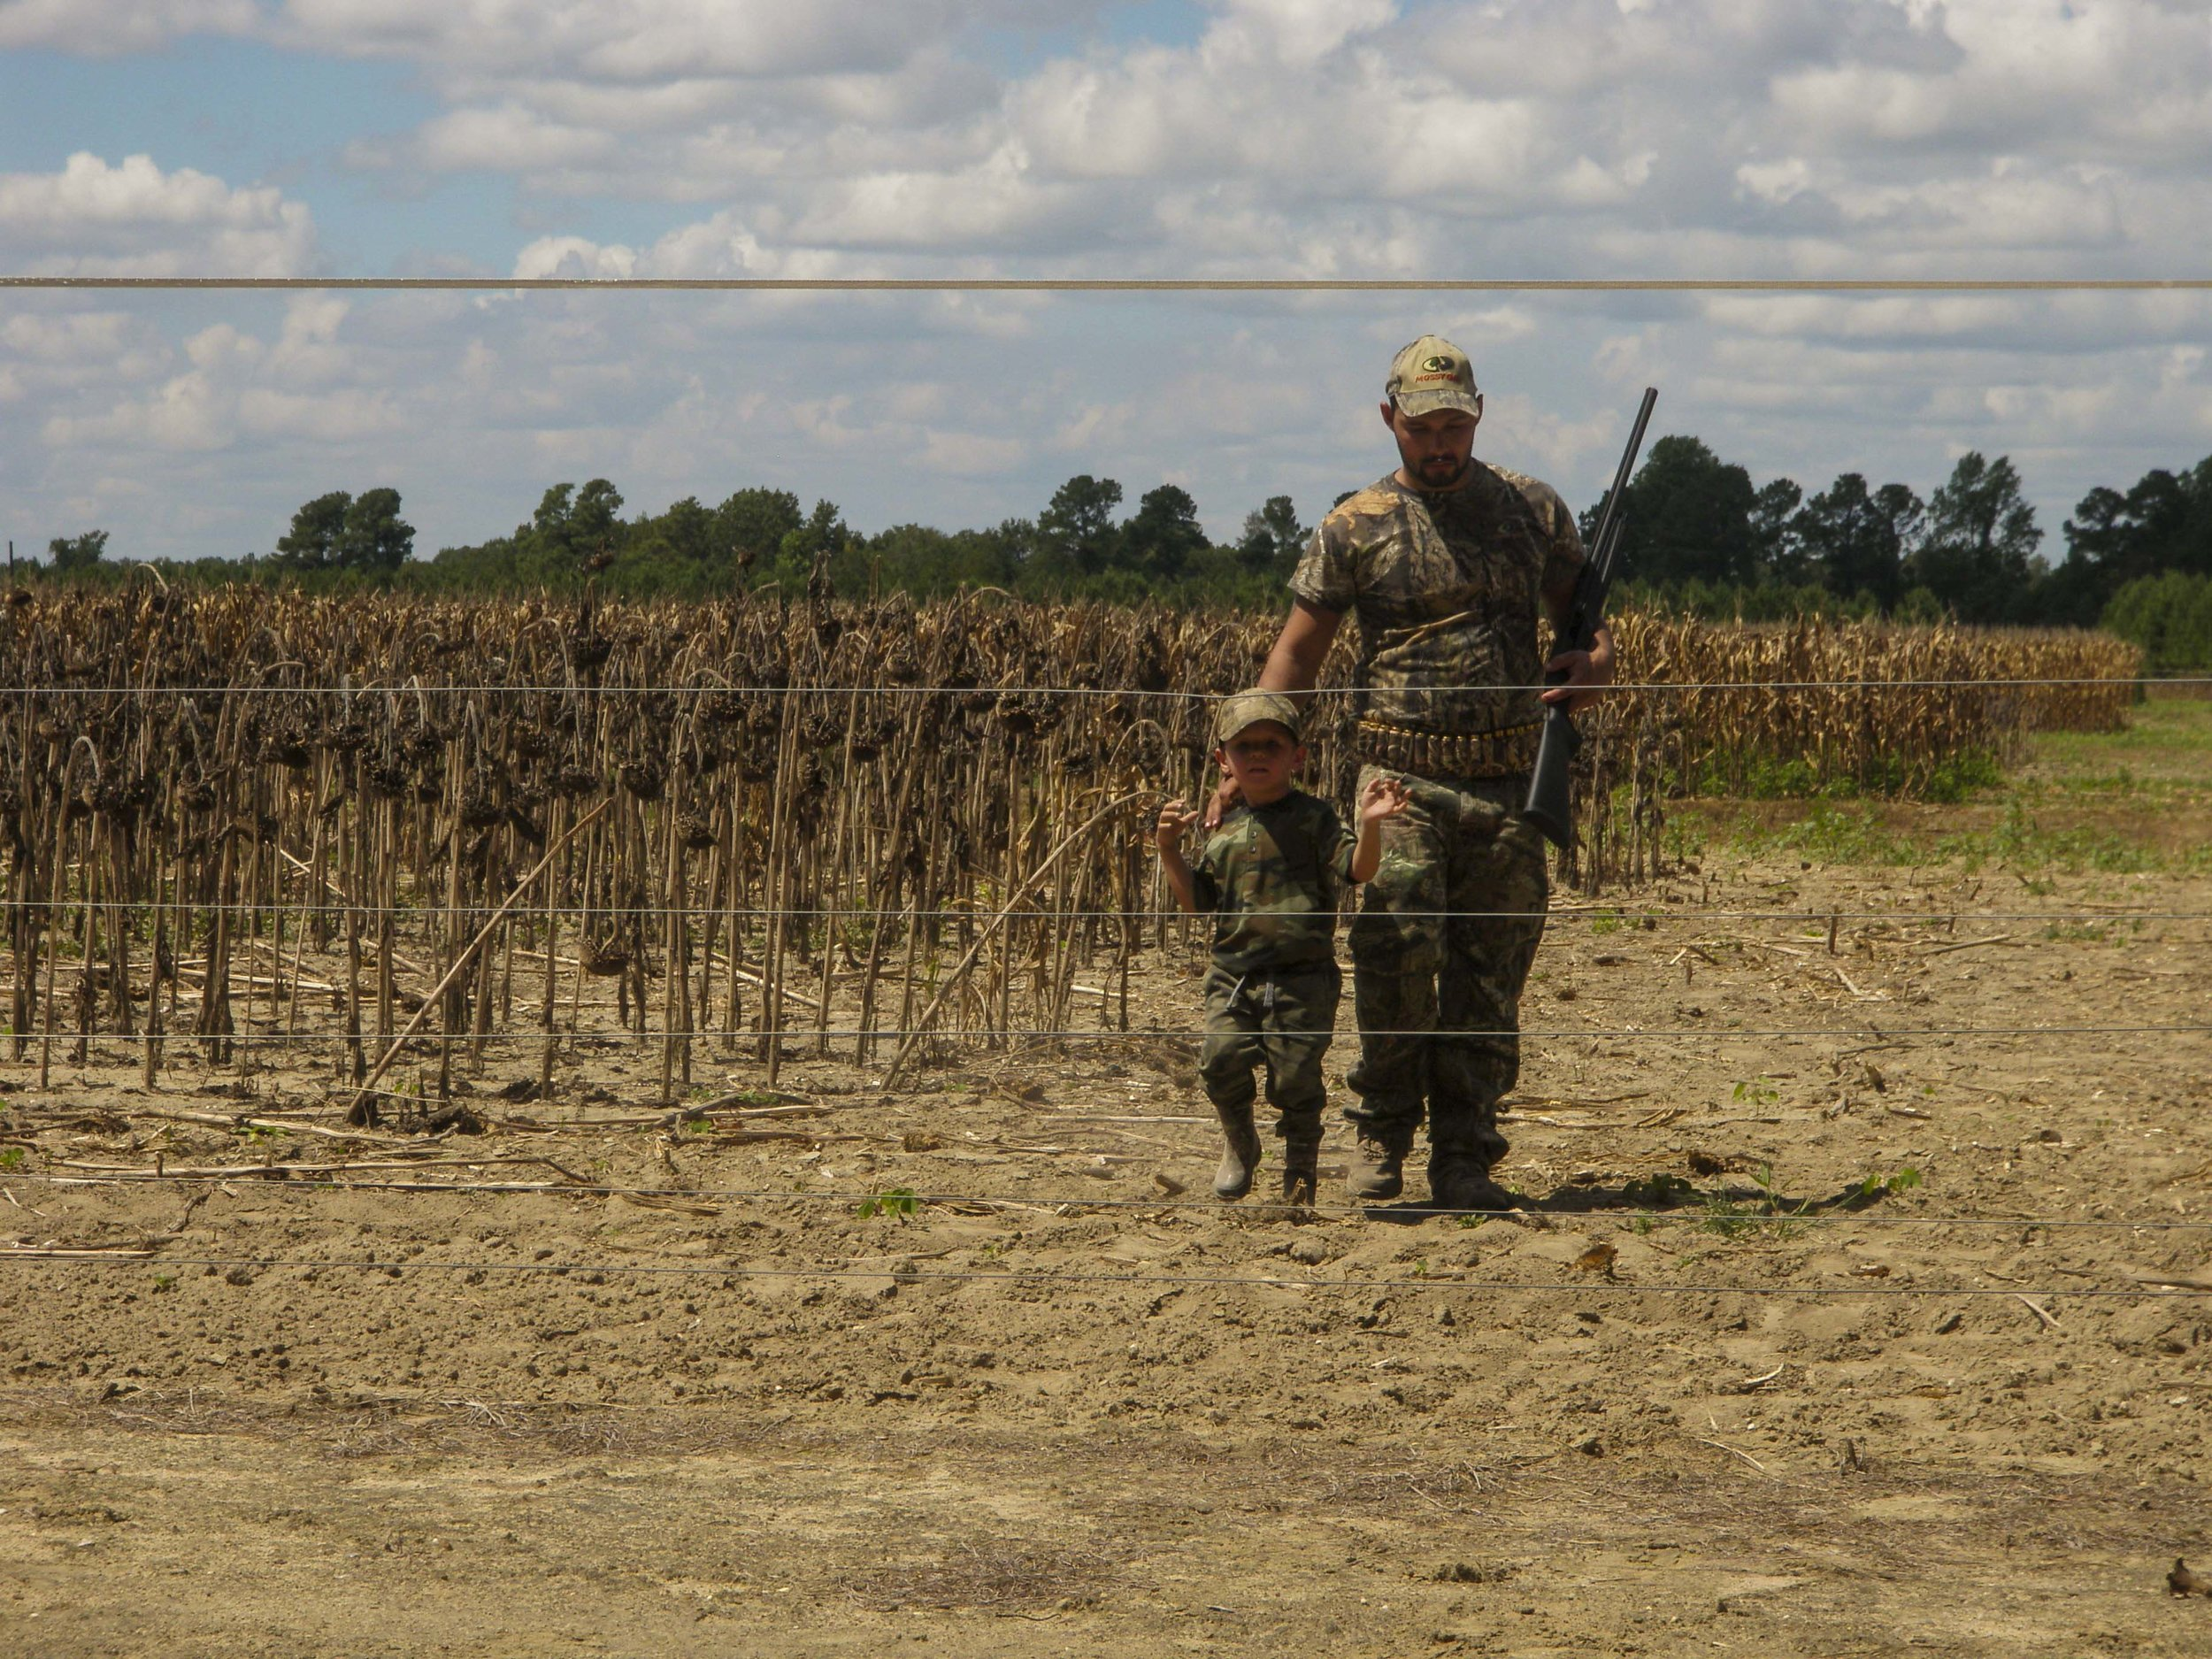 Hunters on Pee Dee Station dove field.